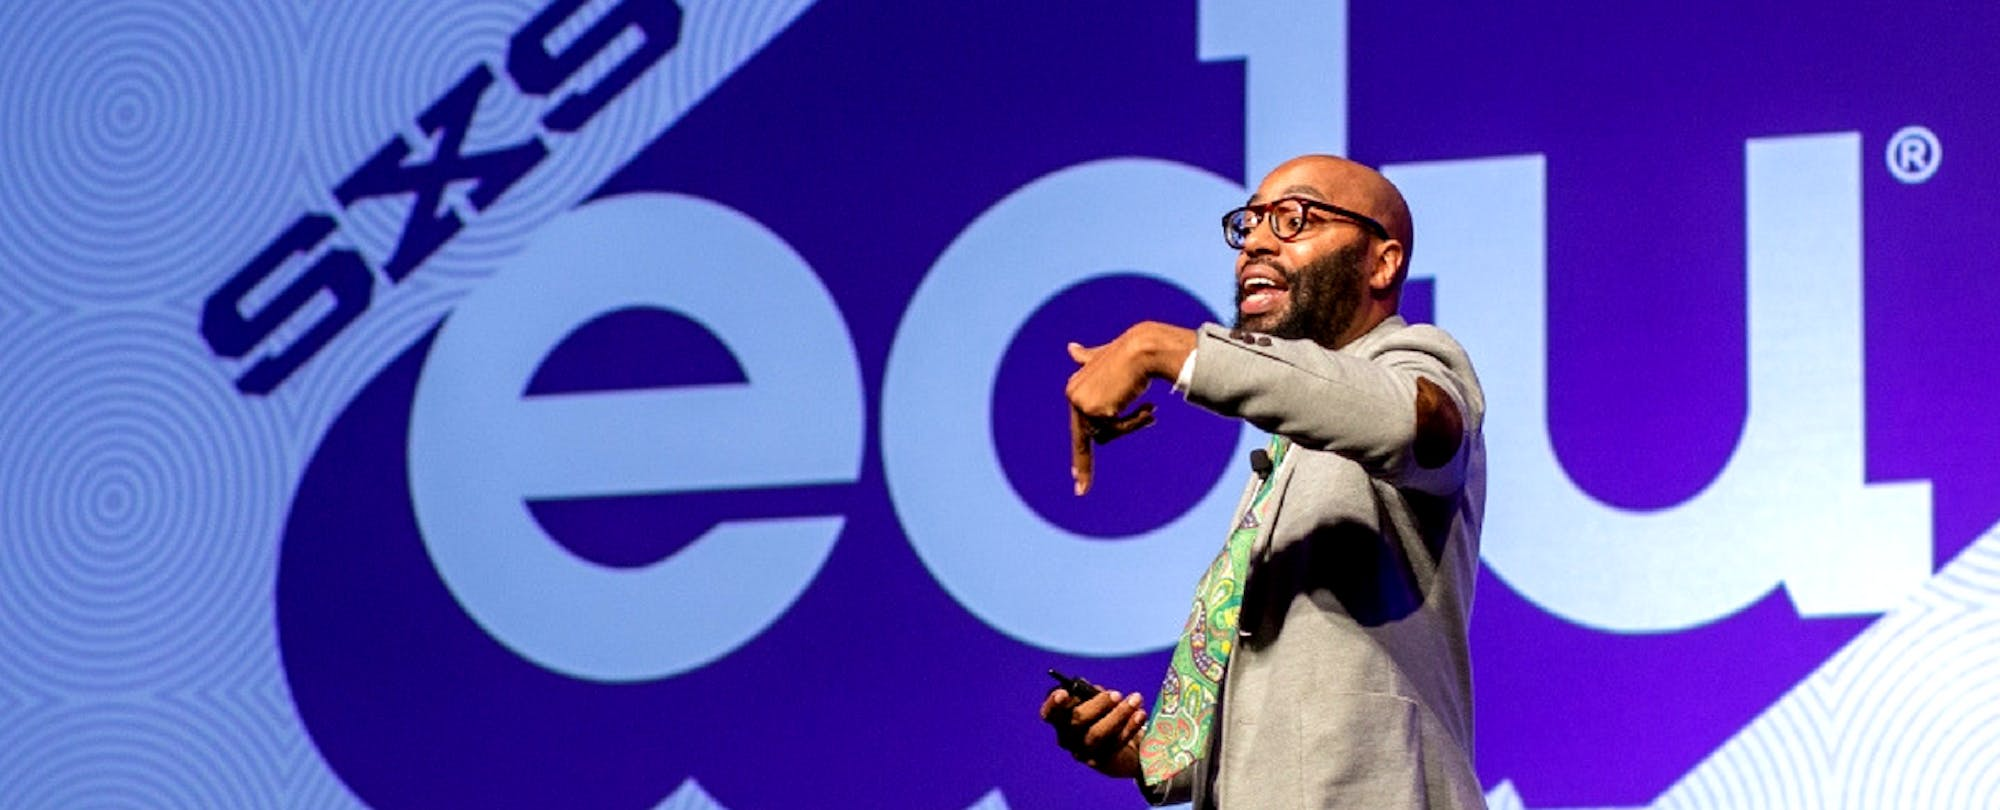 Dr. Christopher Emdin Strikes US Education, Edtech and 'Frenemies' at SXSWedu